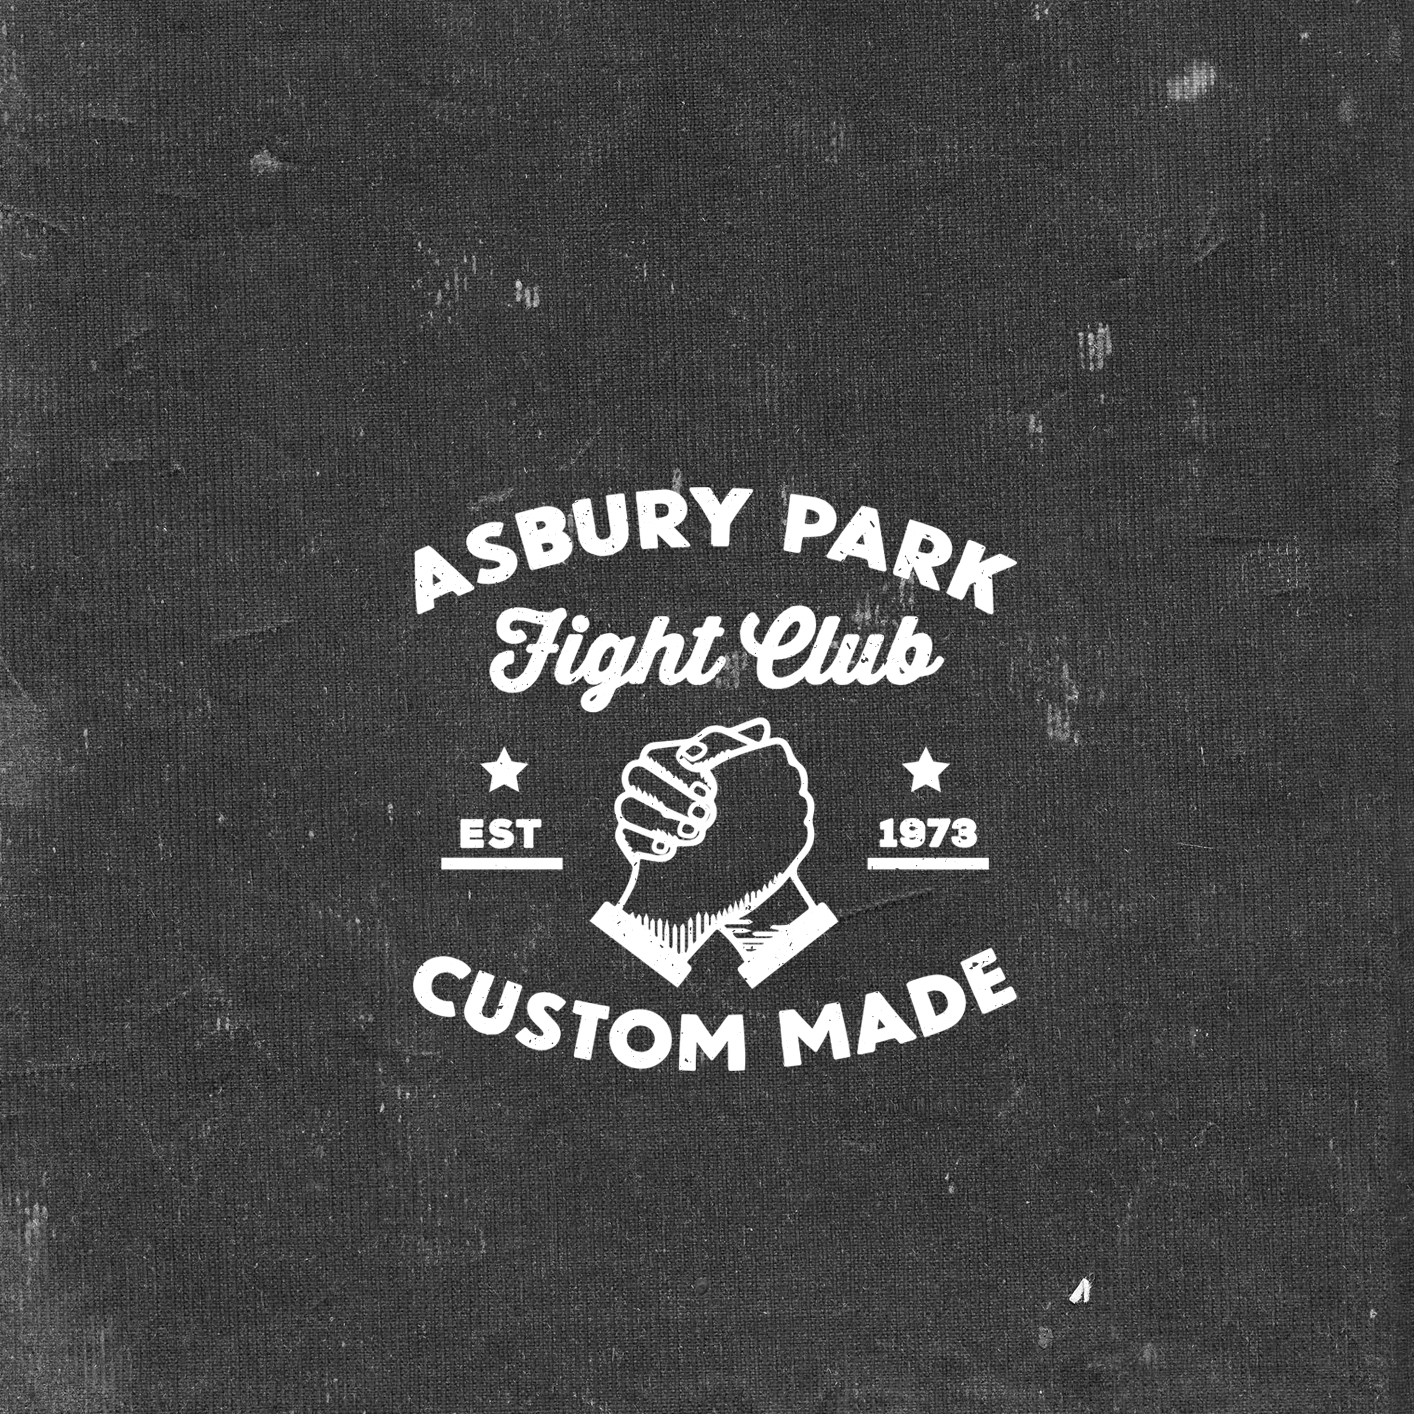 Asbury-Park-Fight-Club-Splash-Intro